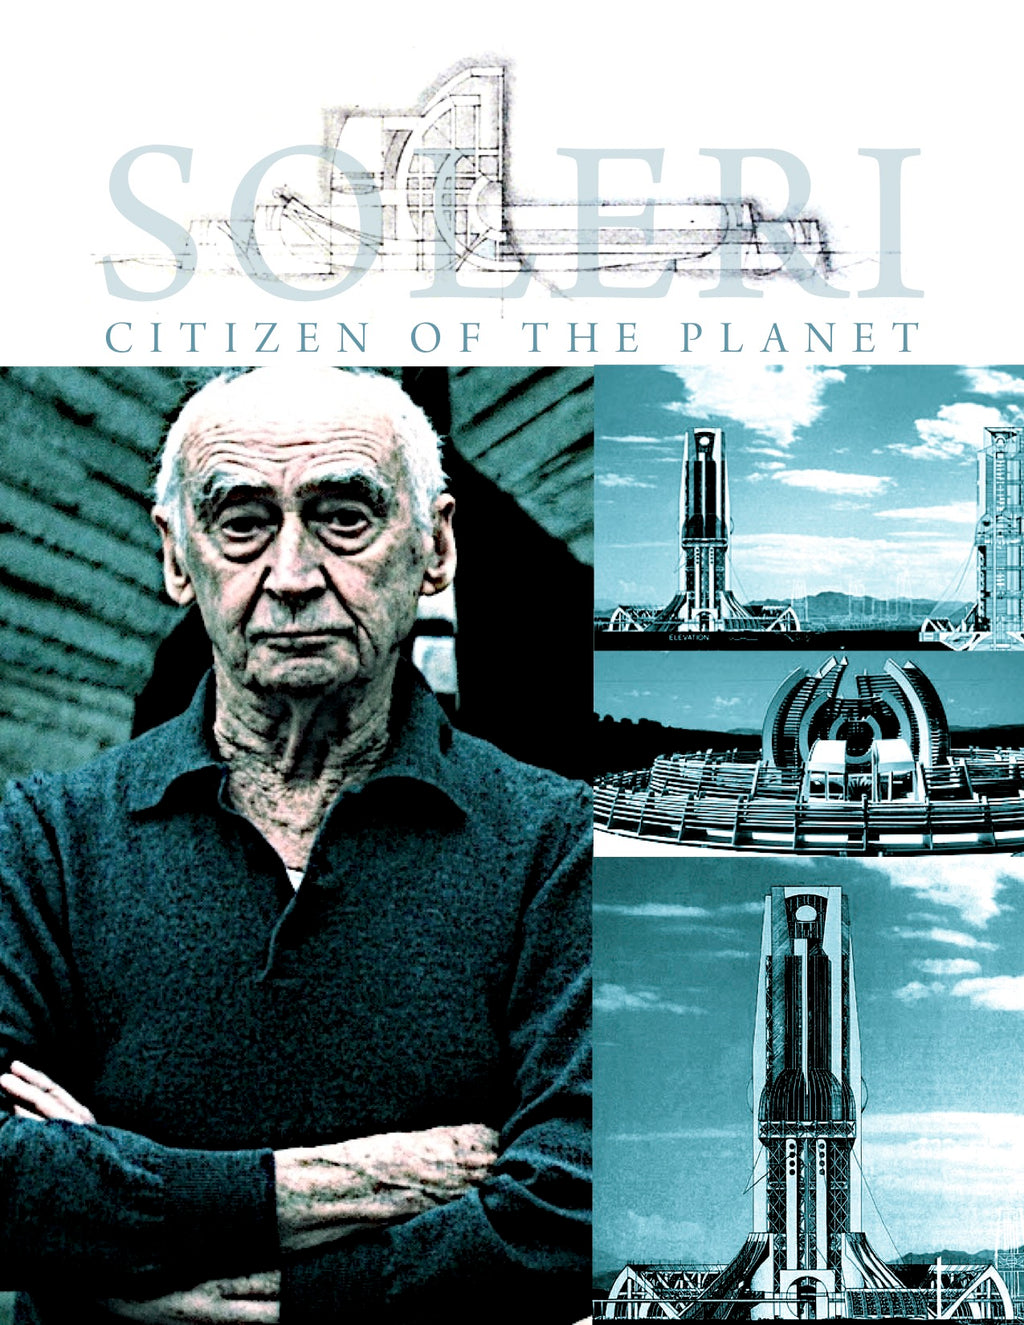 Paolo Soleri: Citizen of the Planet